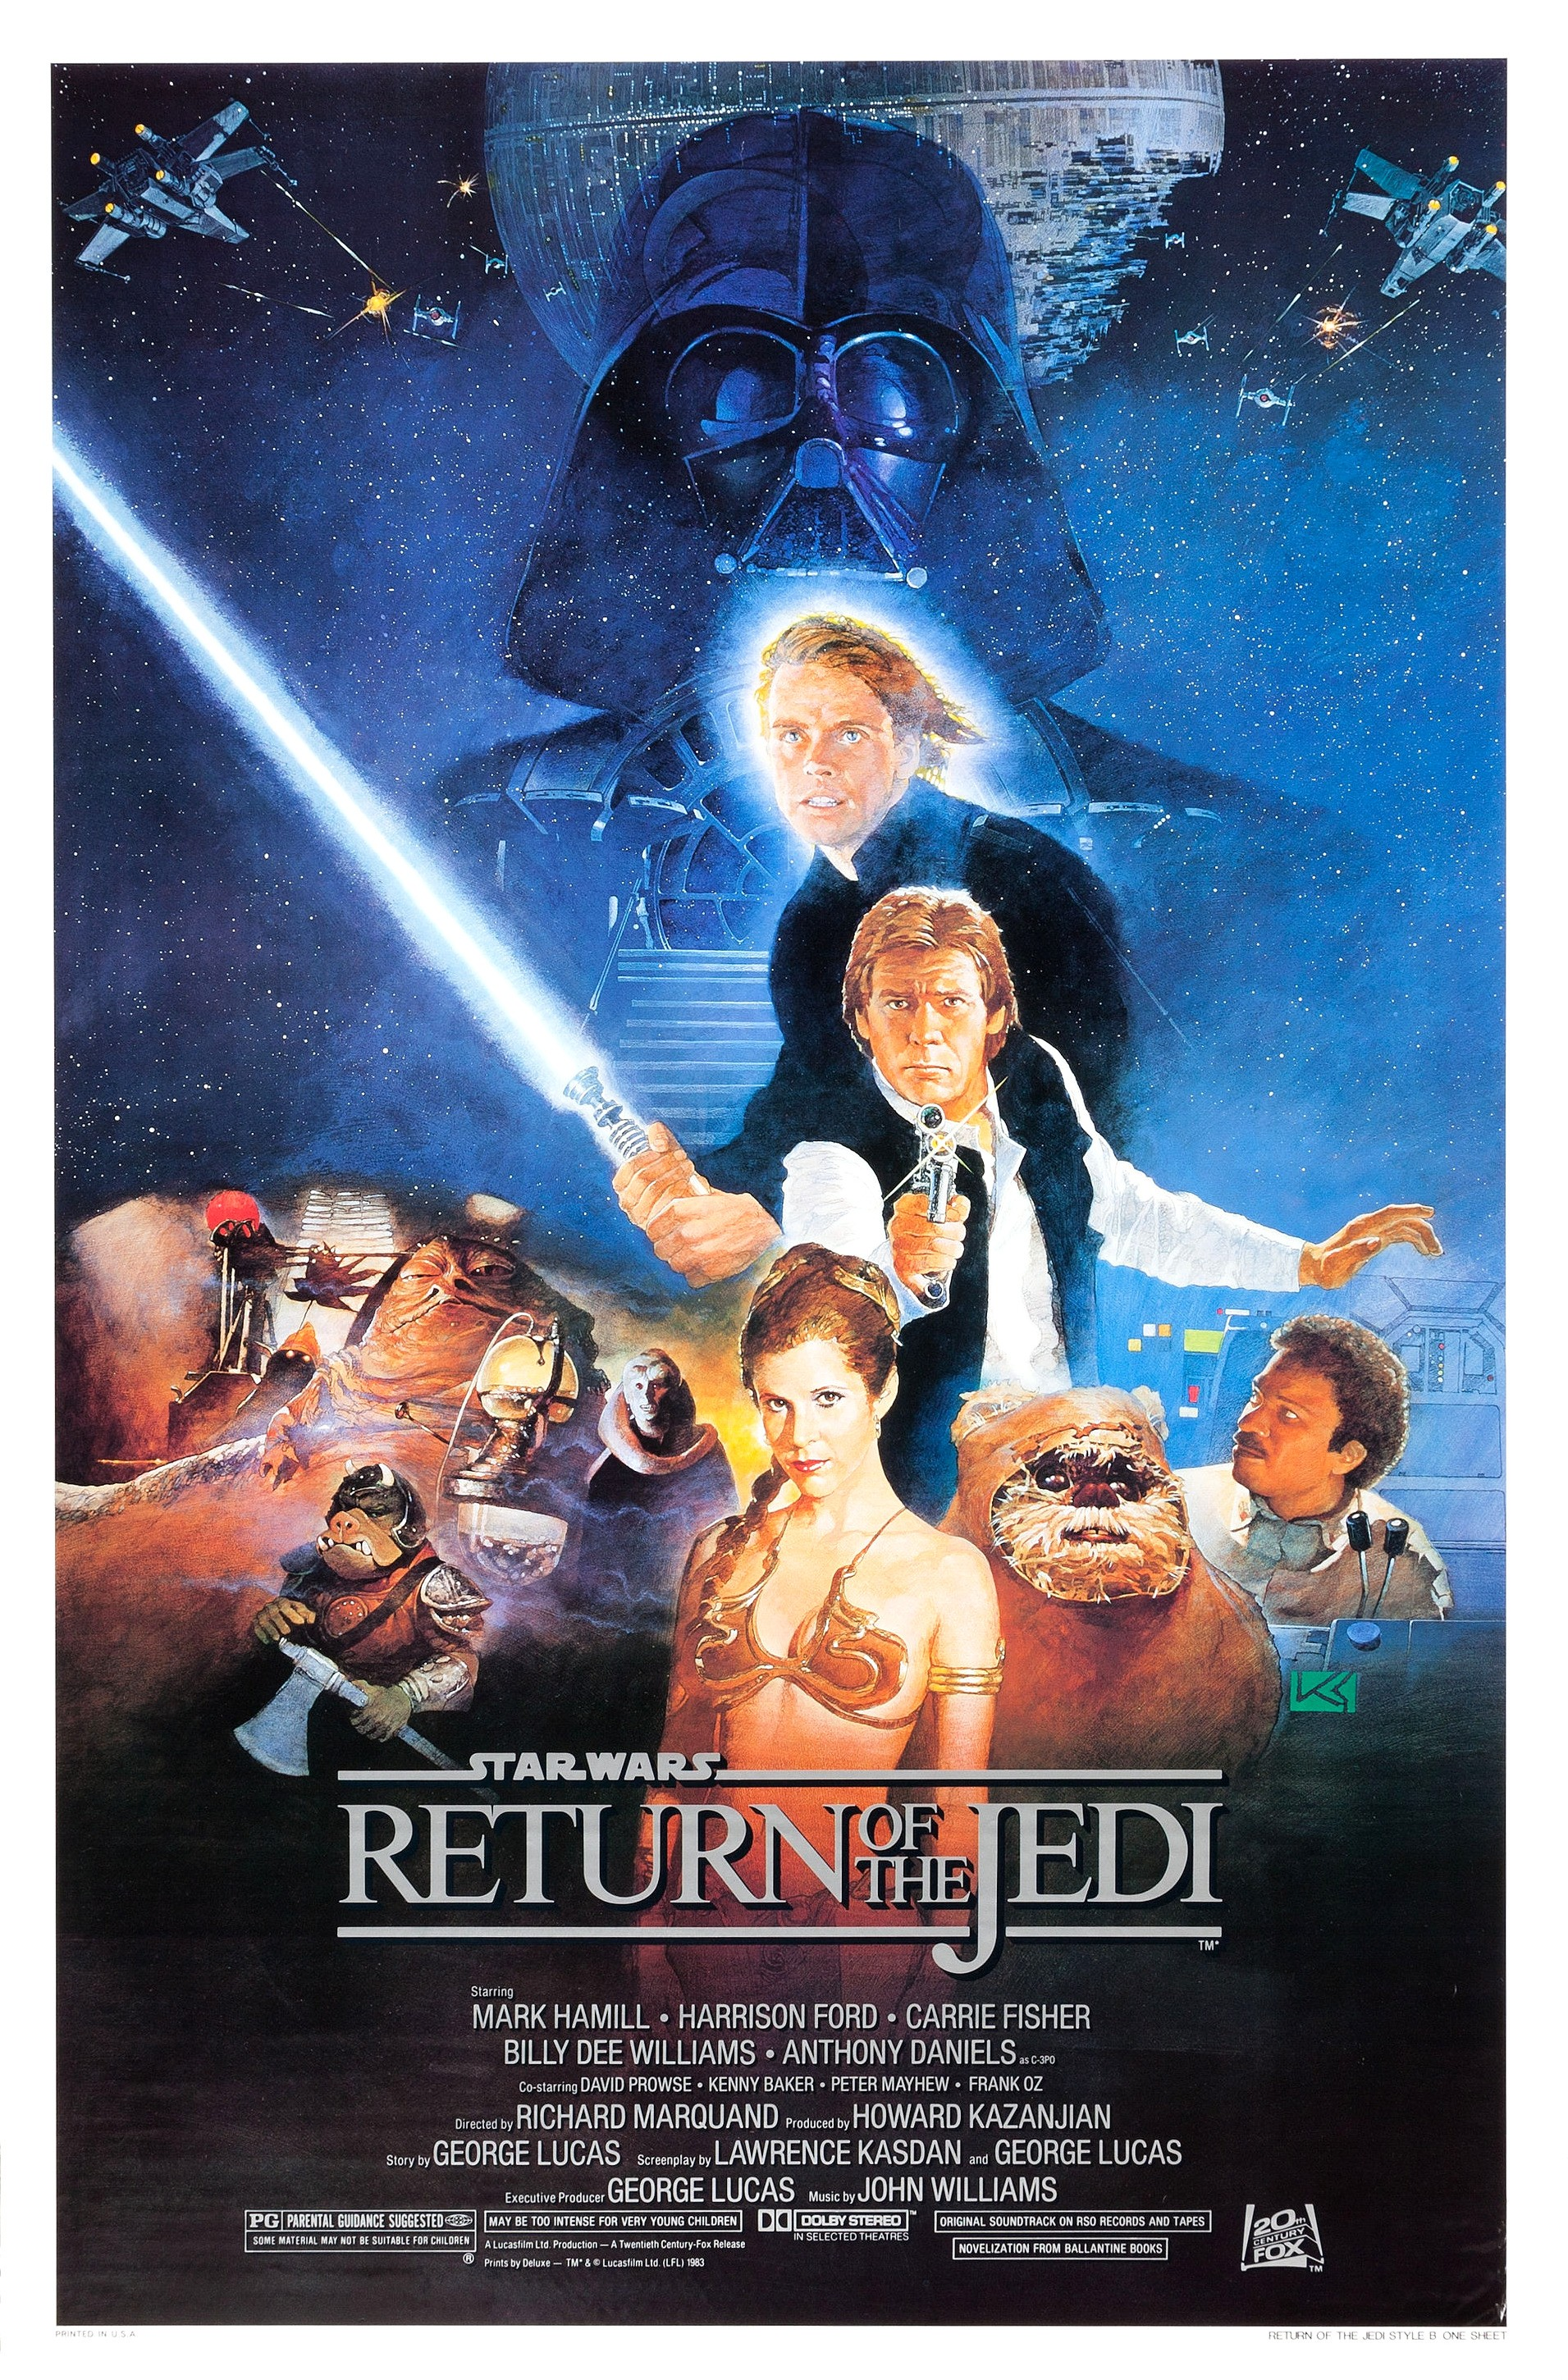 Star Wars Episode VI: Return of the Jedi | Lucasfilm Wiki | FANDOM